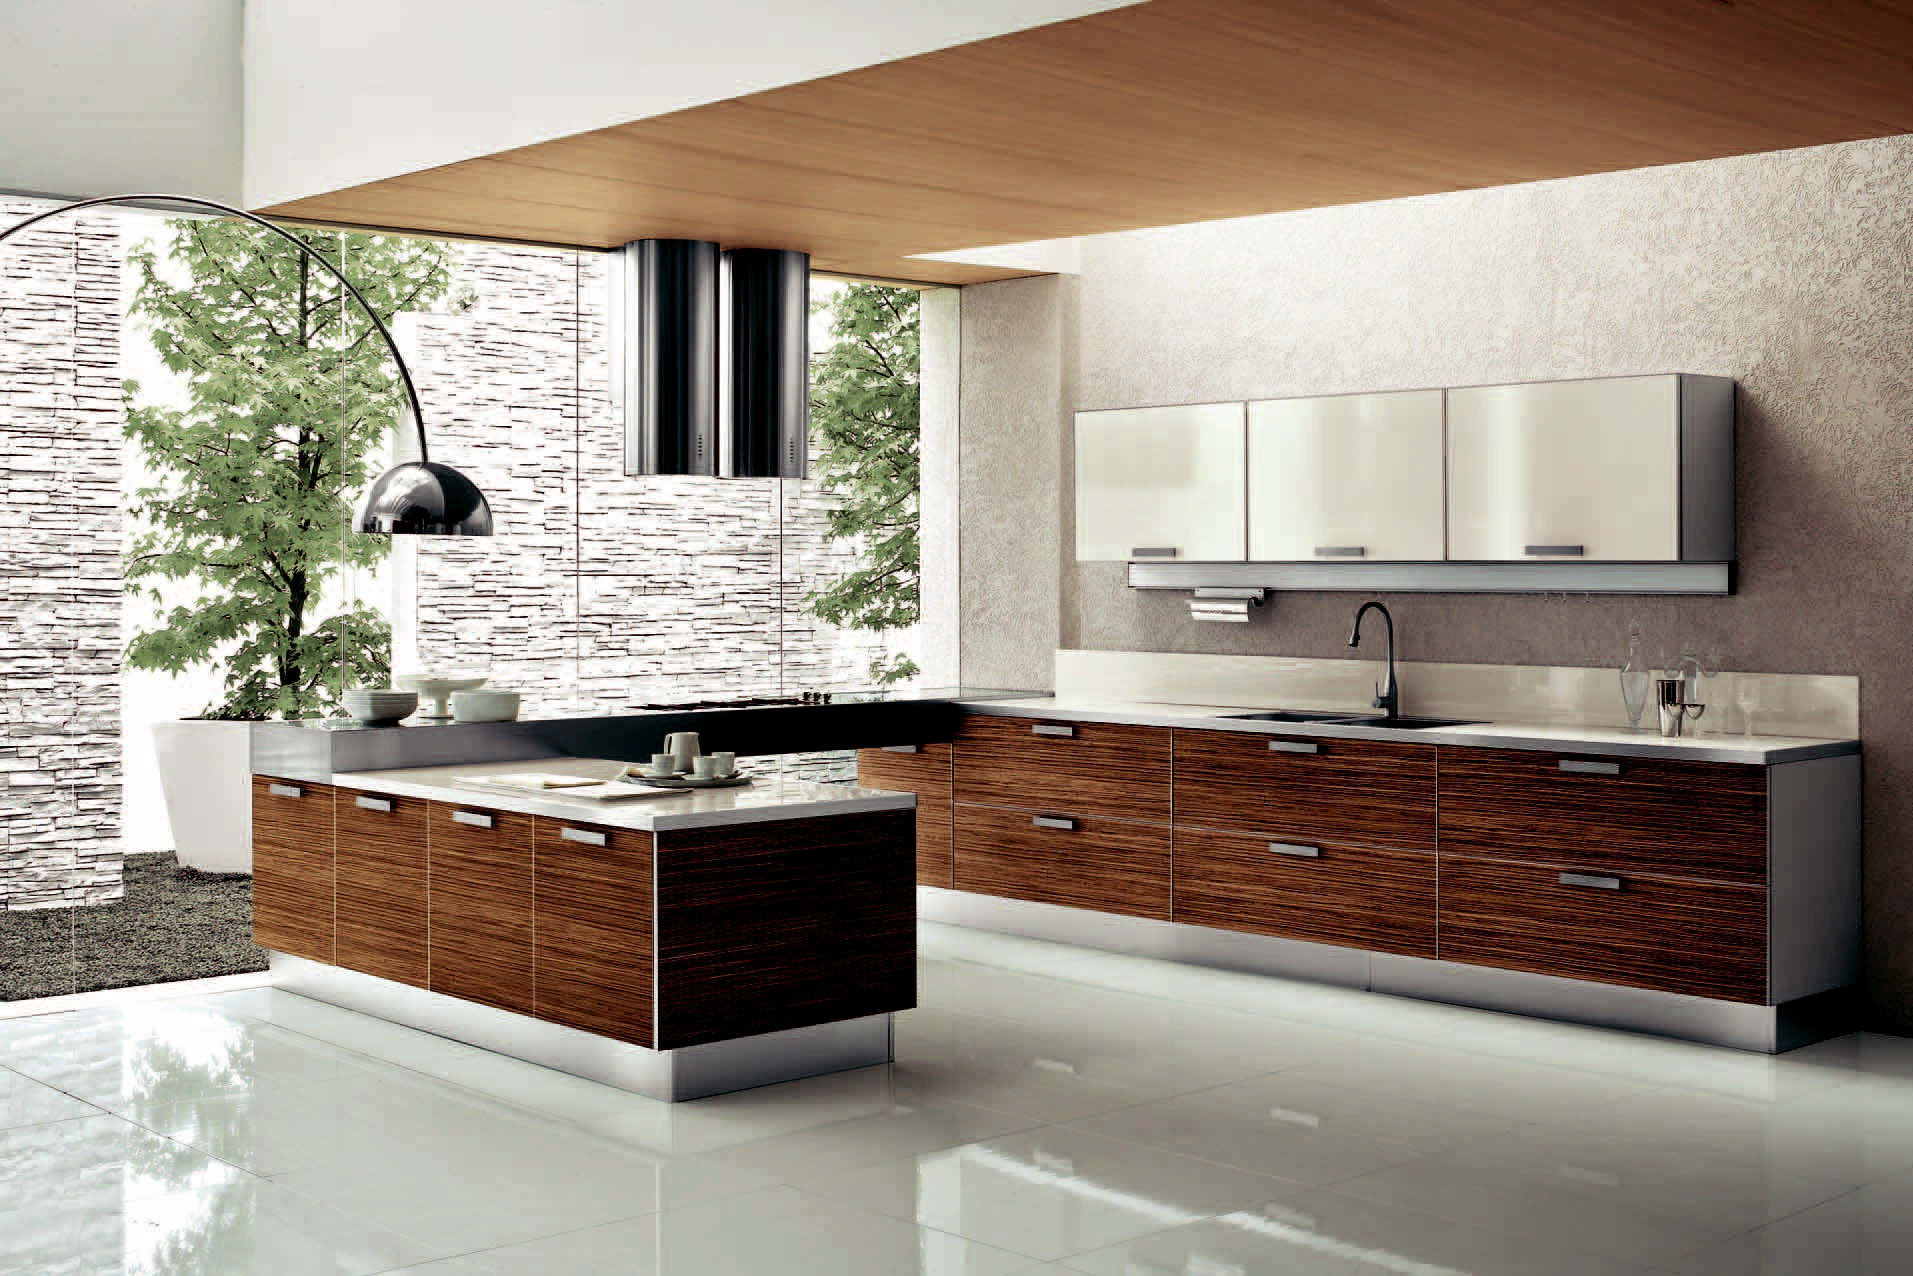 Beyond kitchens kitchen cupboards cape town kitchens for Modern kitchen plans